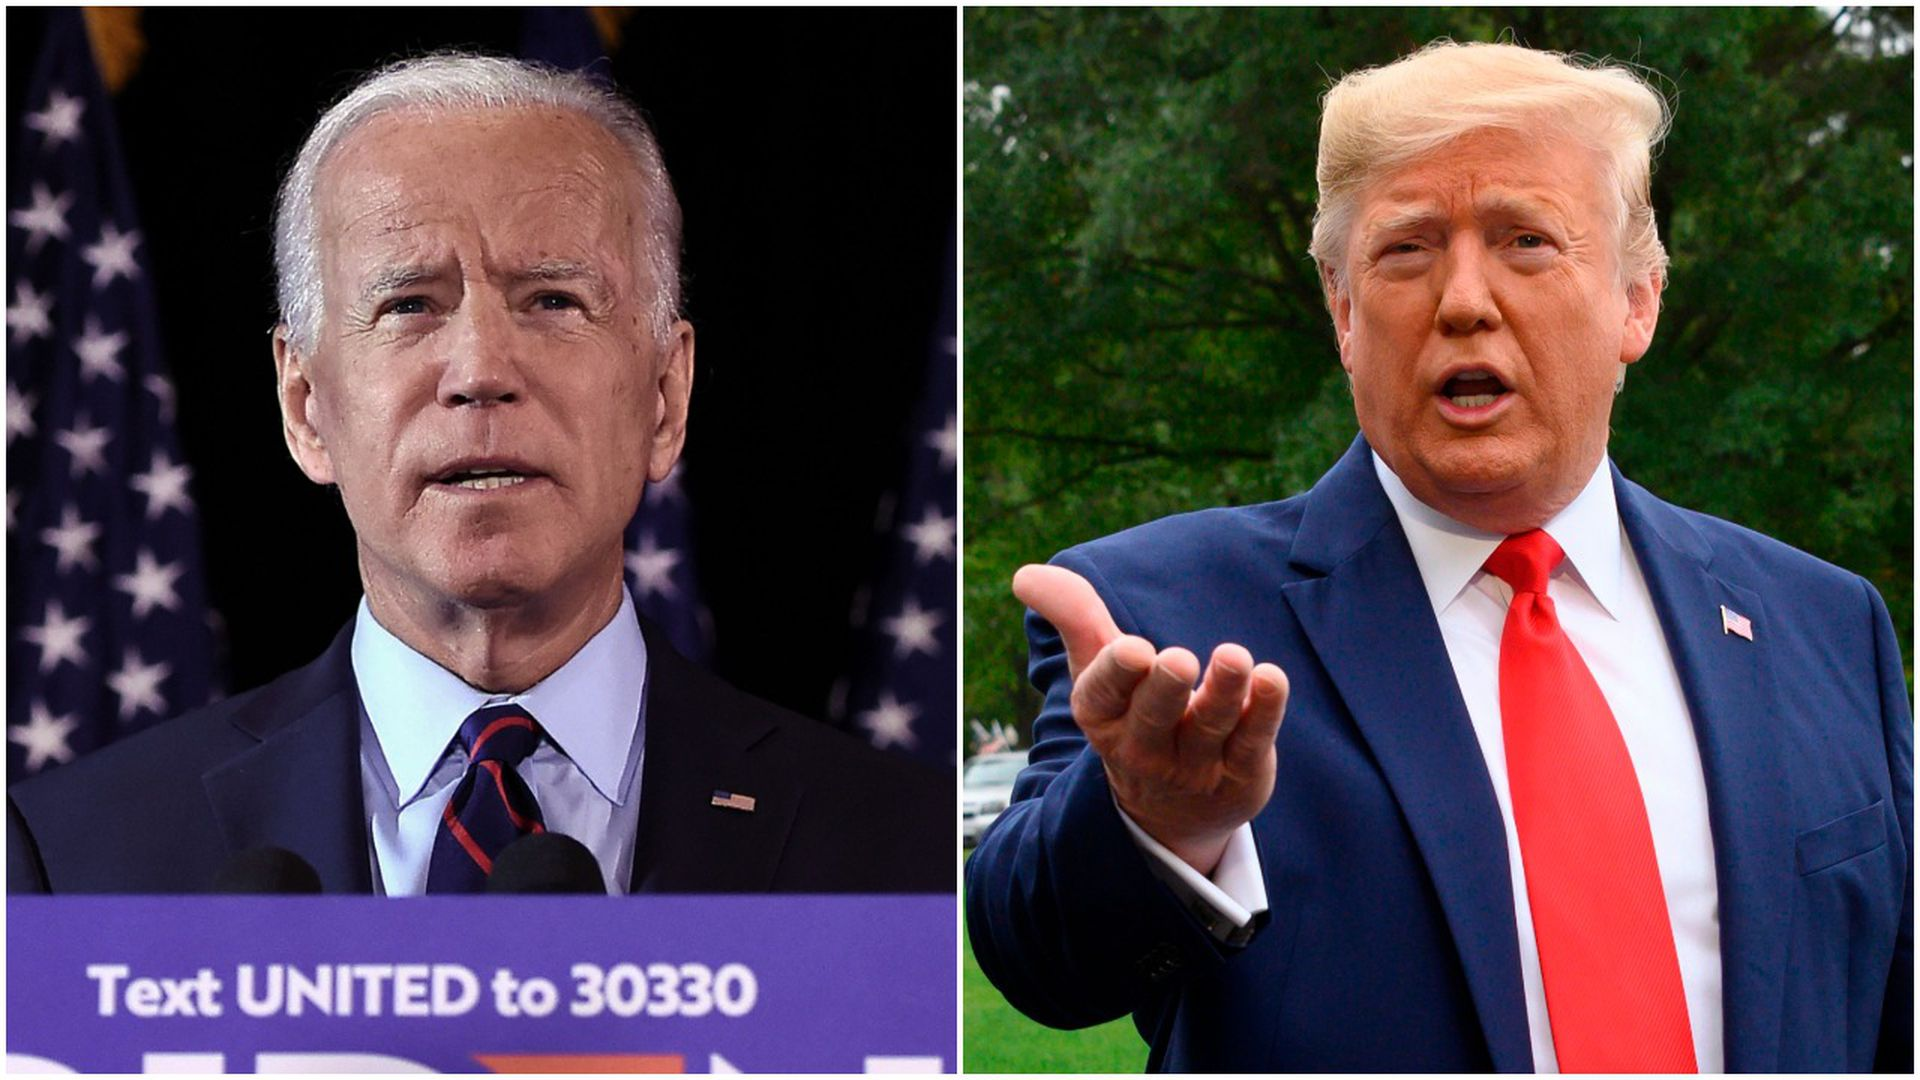 Poll: Biden leads Trump by 12 points in head-to-head matchup